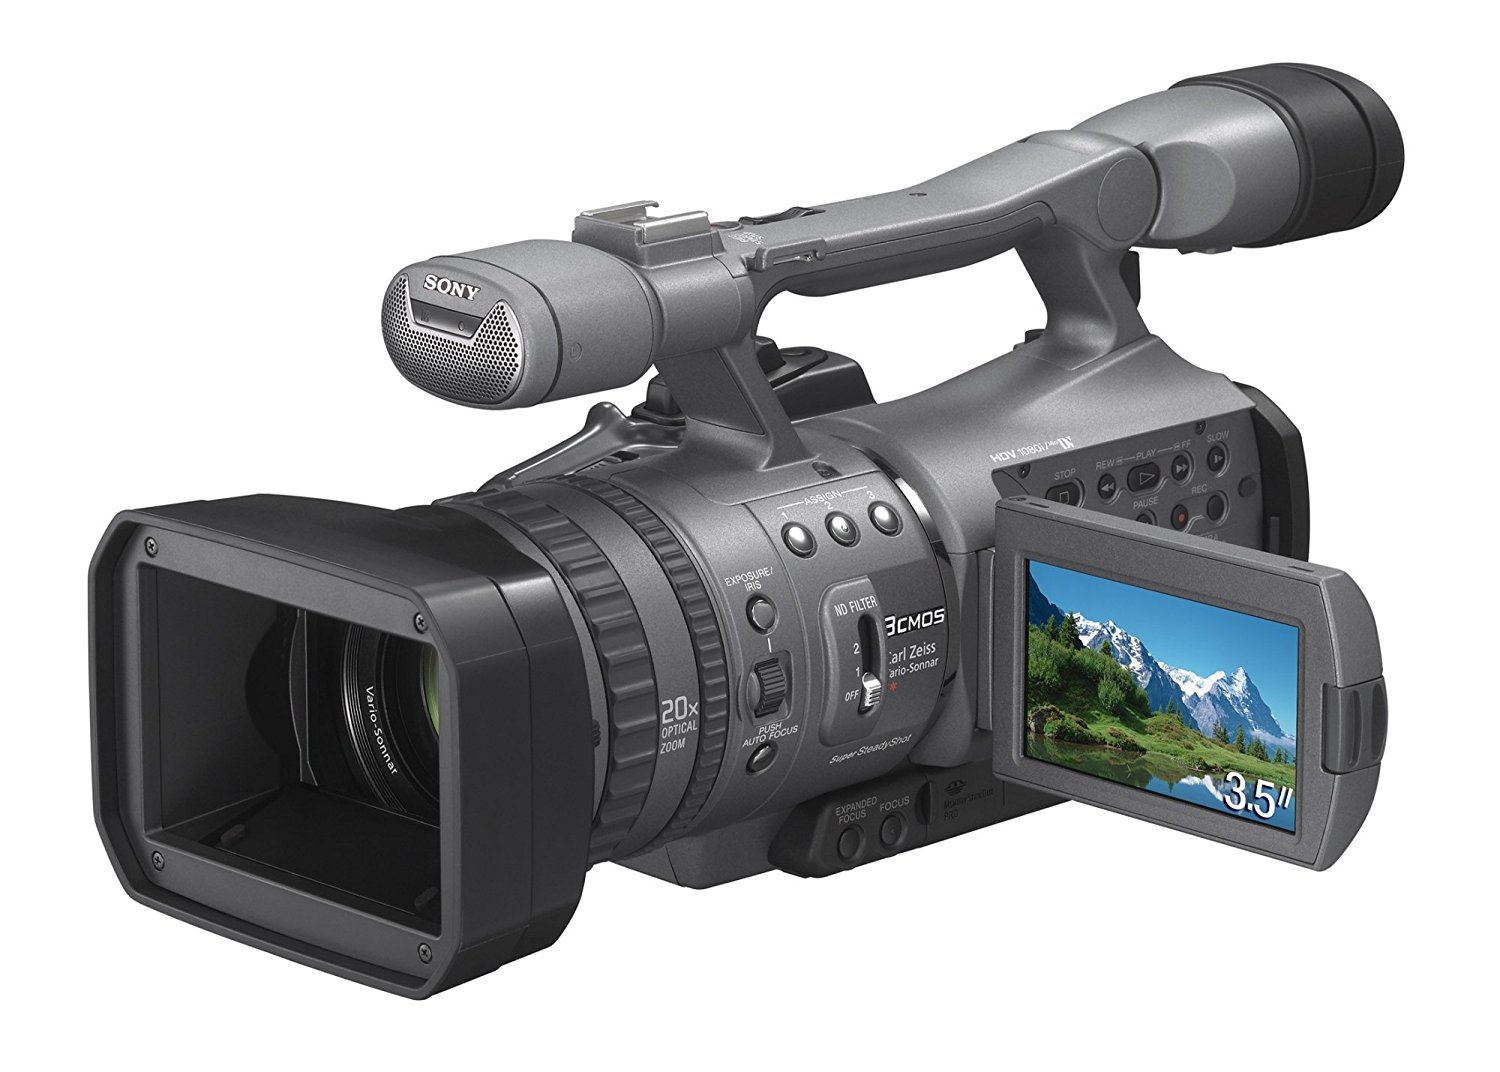 Sony HDRFX7E - Videocámara (pantalla de 3.5 pulgadas)